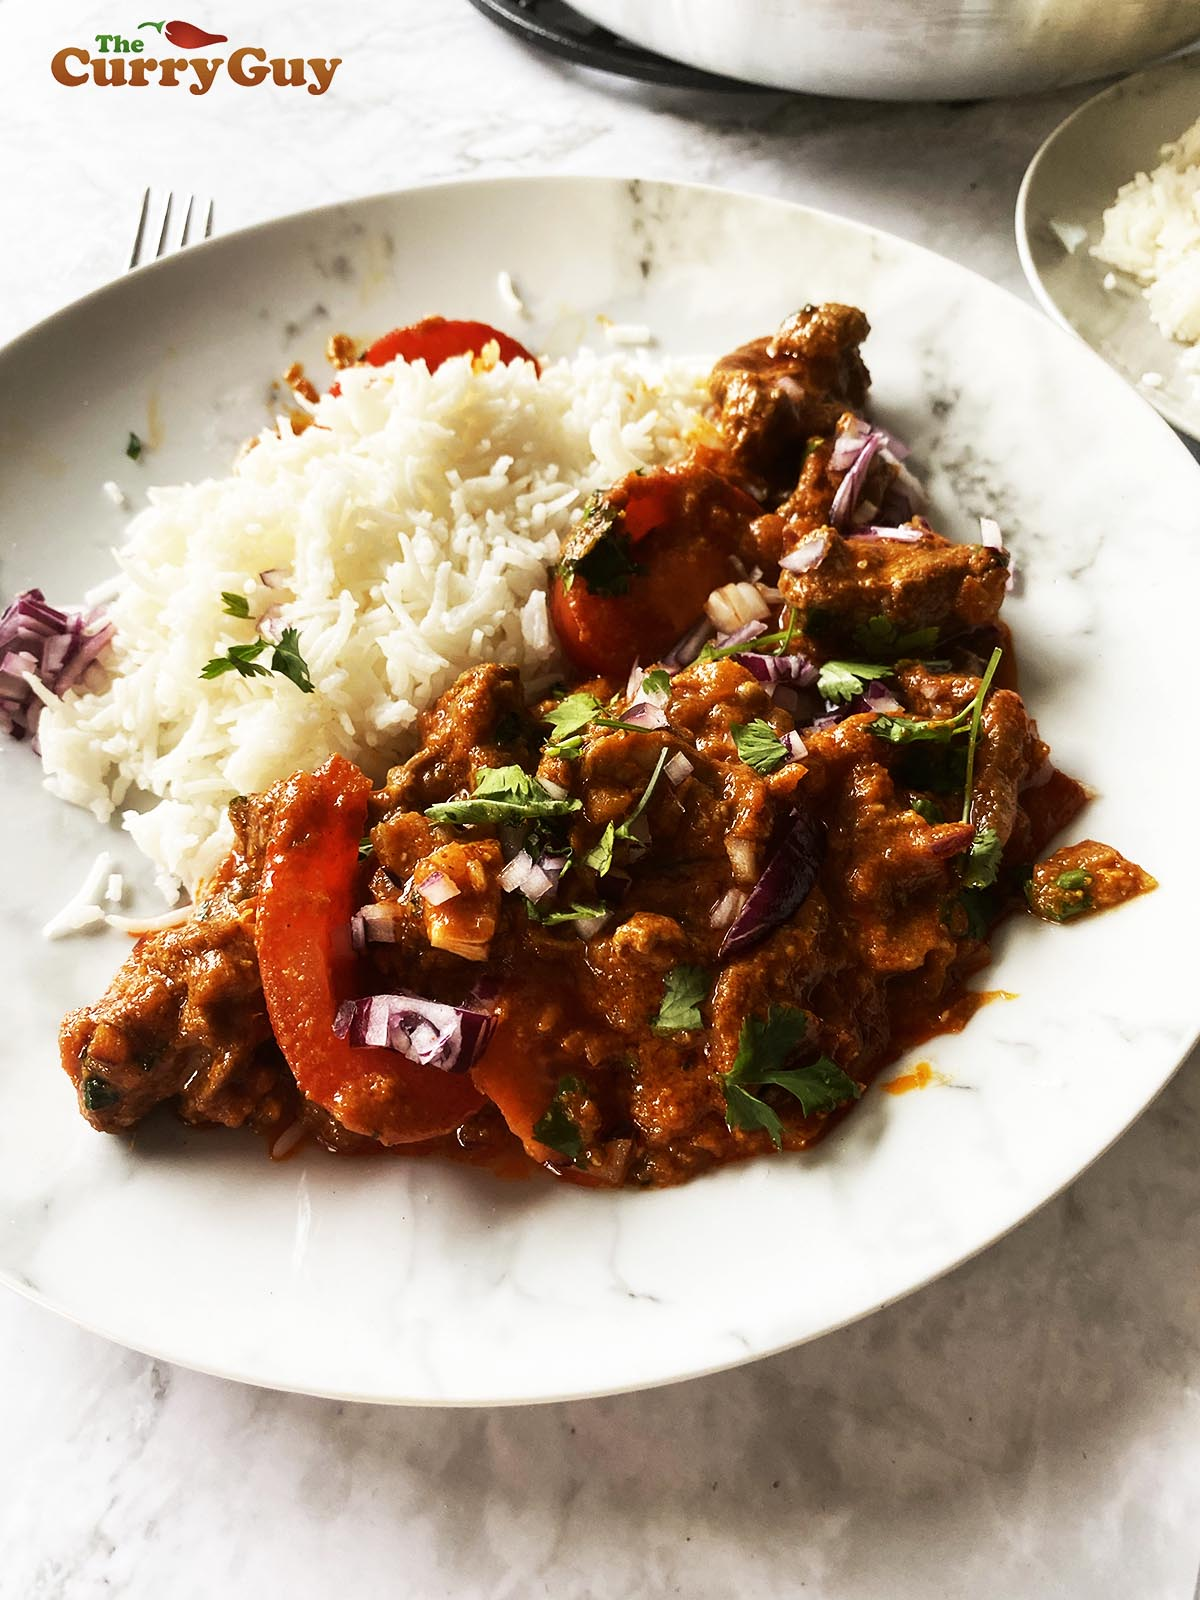 Rogan Josh curry with rice